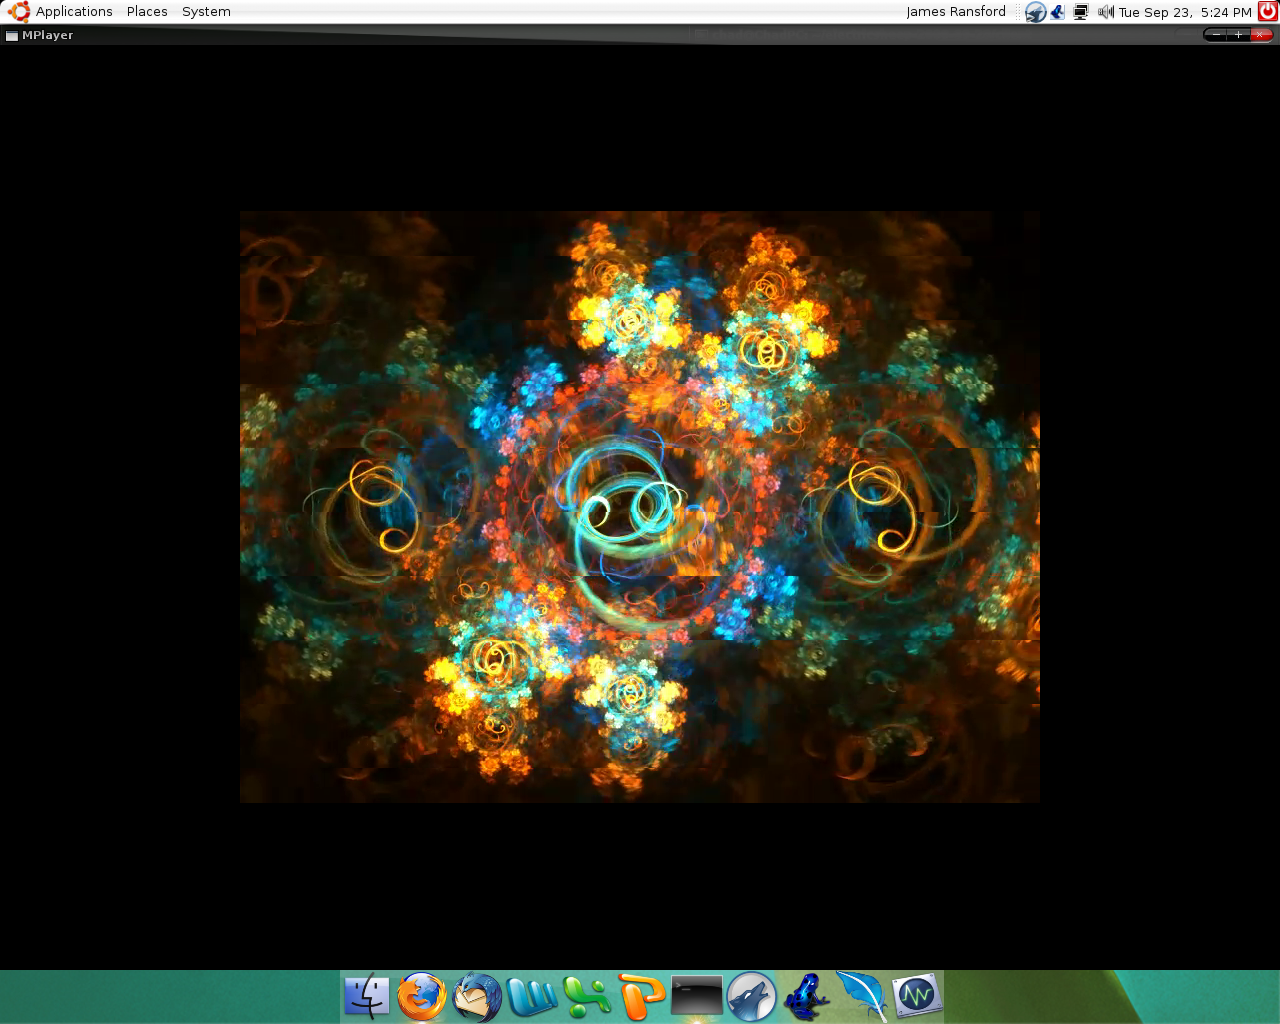 howto set your background to electric sheep screensaver   Page 3 1280x1024